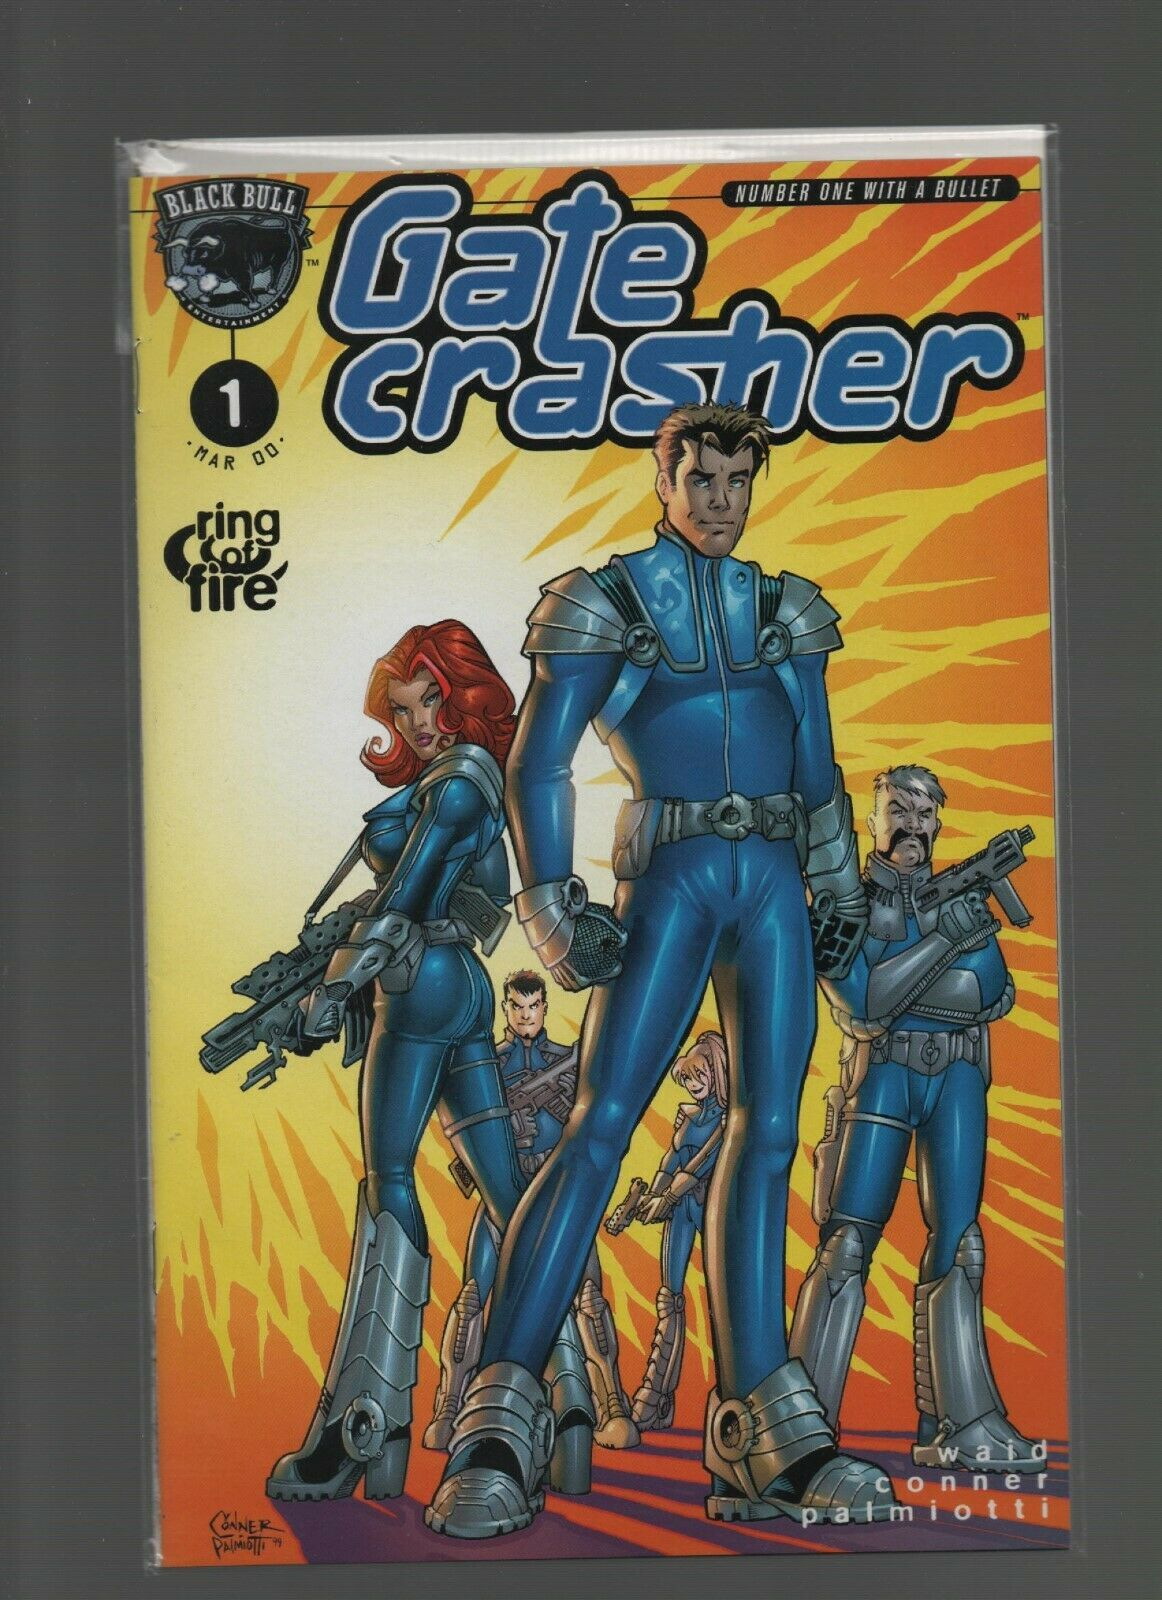 Gate Crasher #1 - March 2000 Black Bull - Ring of Fire - Wald, Conner, Palmiotti